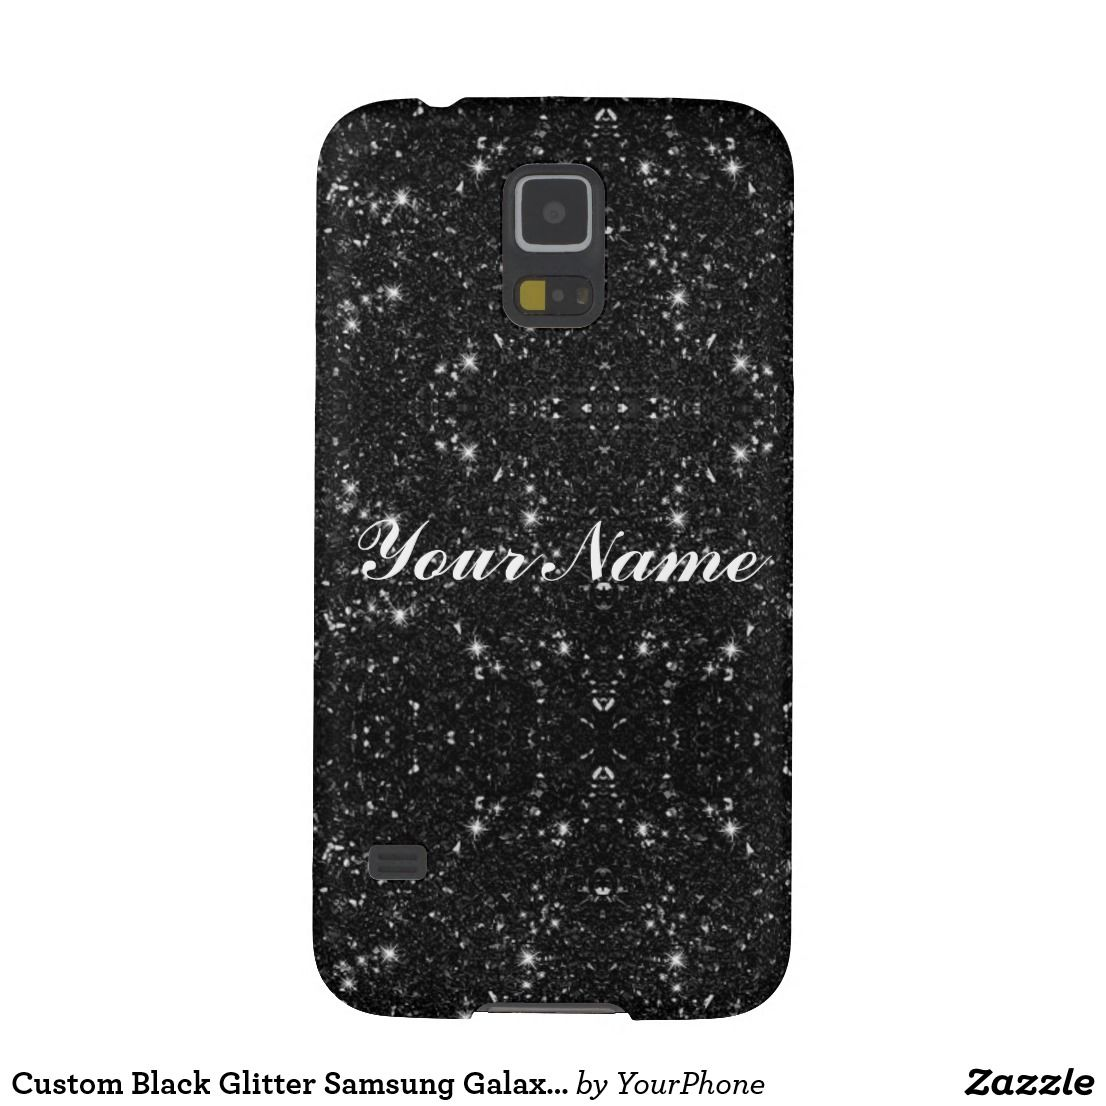 custom black glitter samsung galaxy s5 case fun pinterest